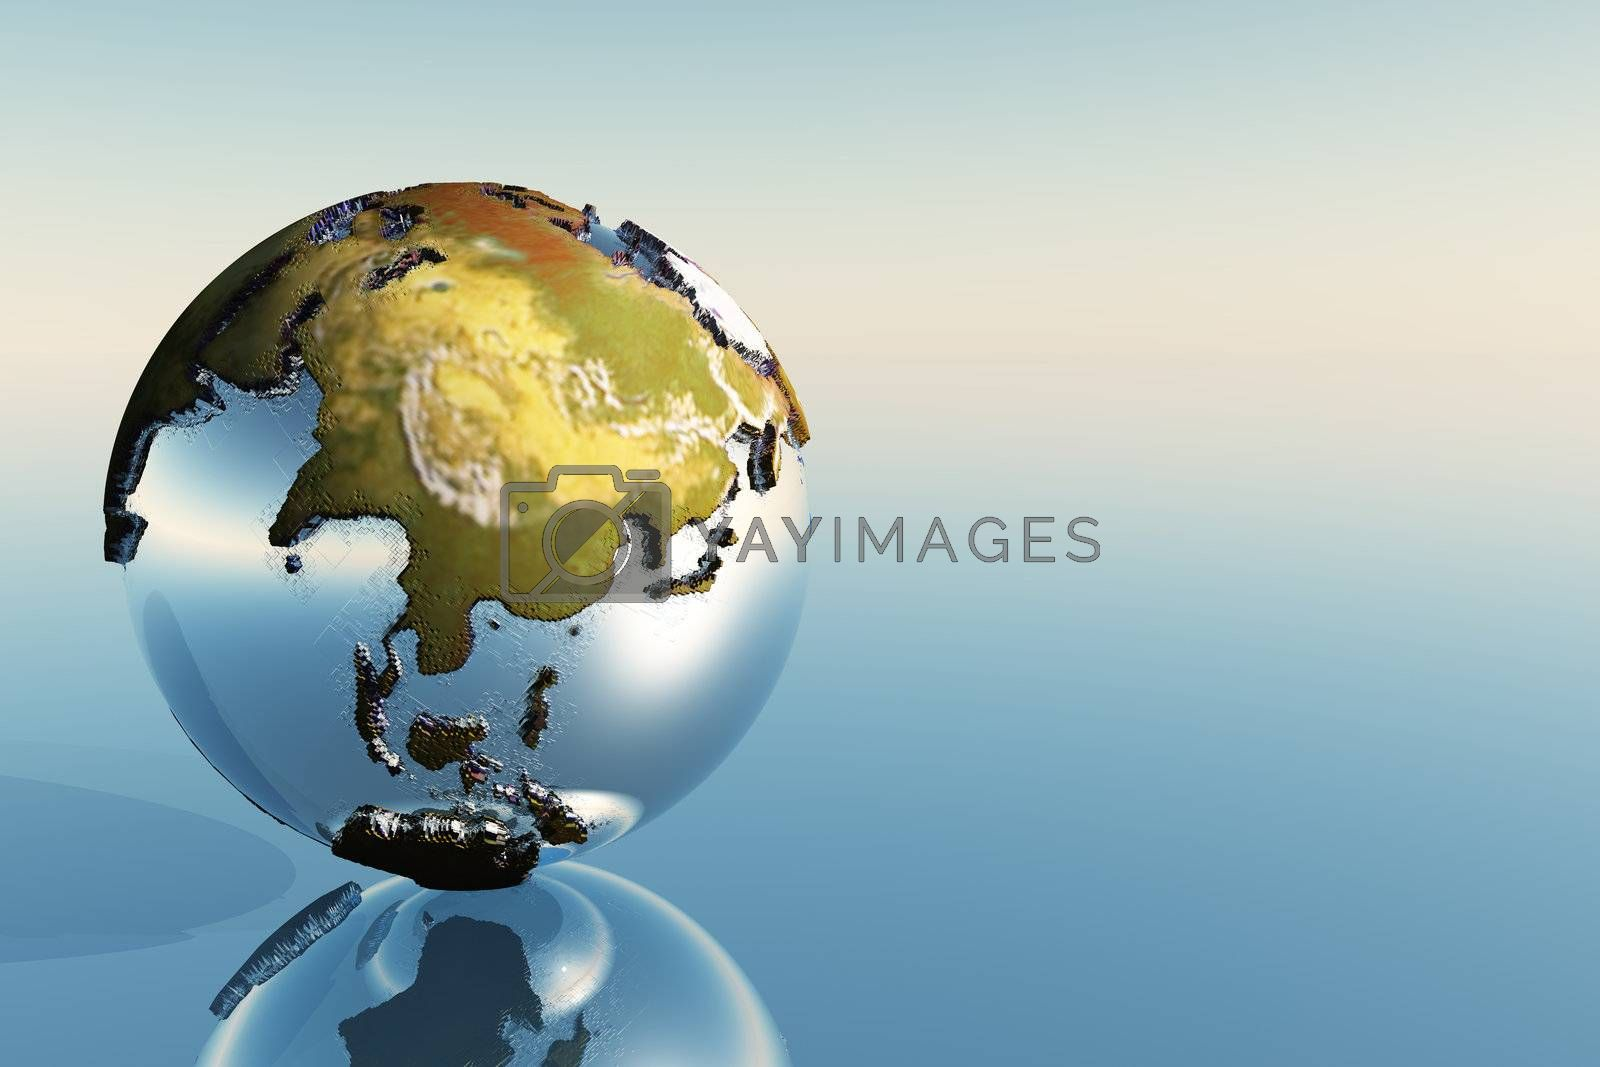 Royalty free image of INDIA,ASIA,JAPAN by Catmando